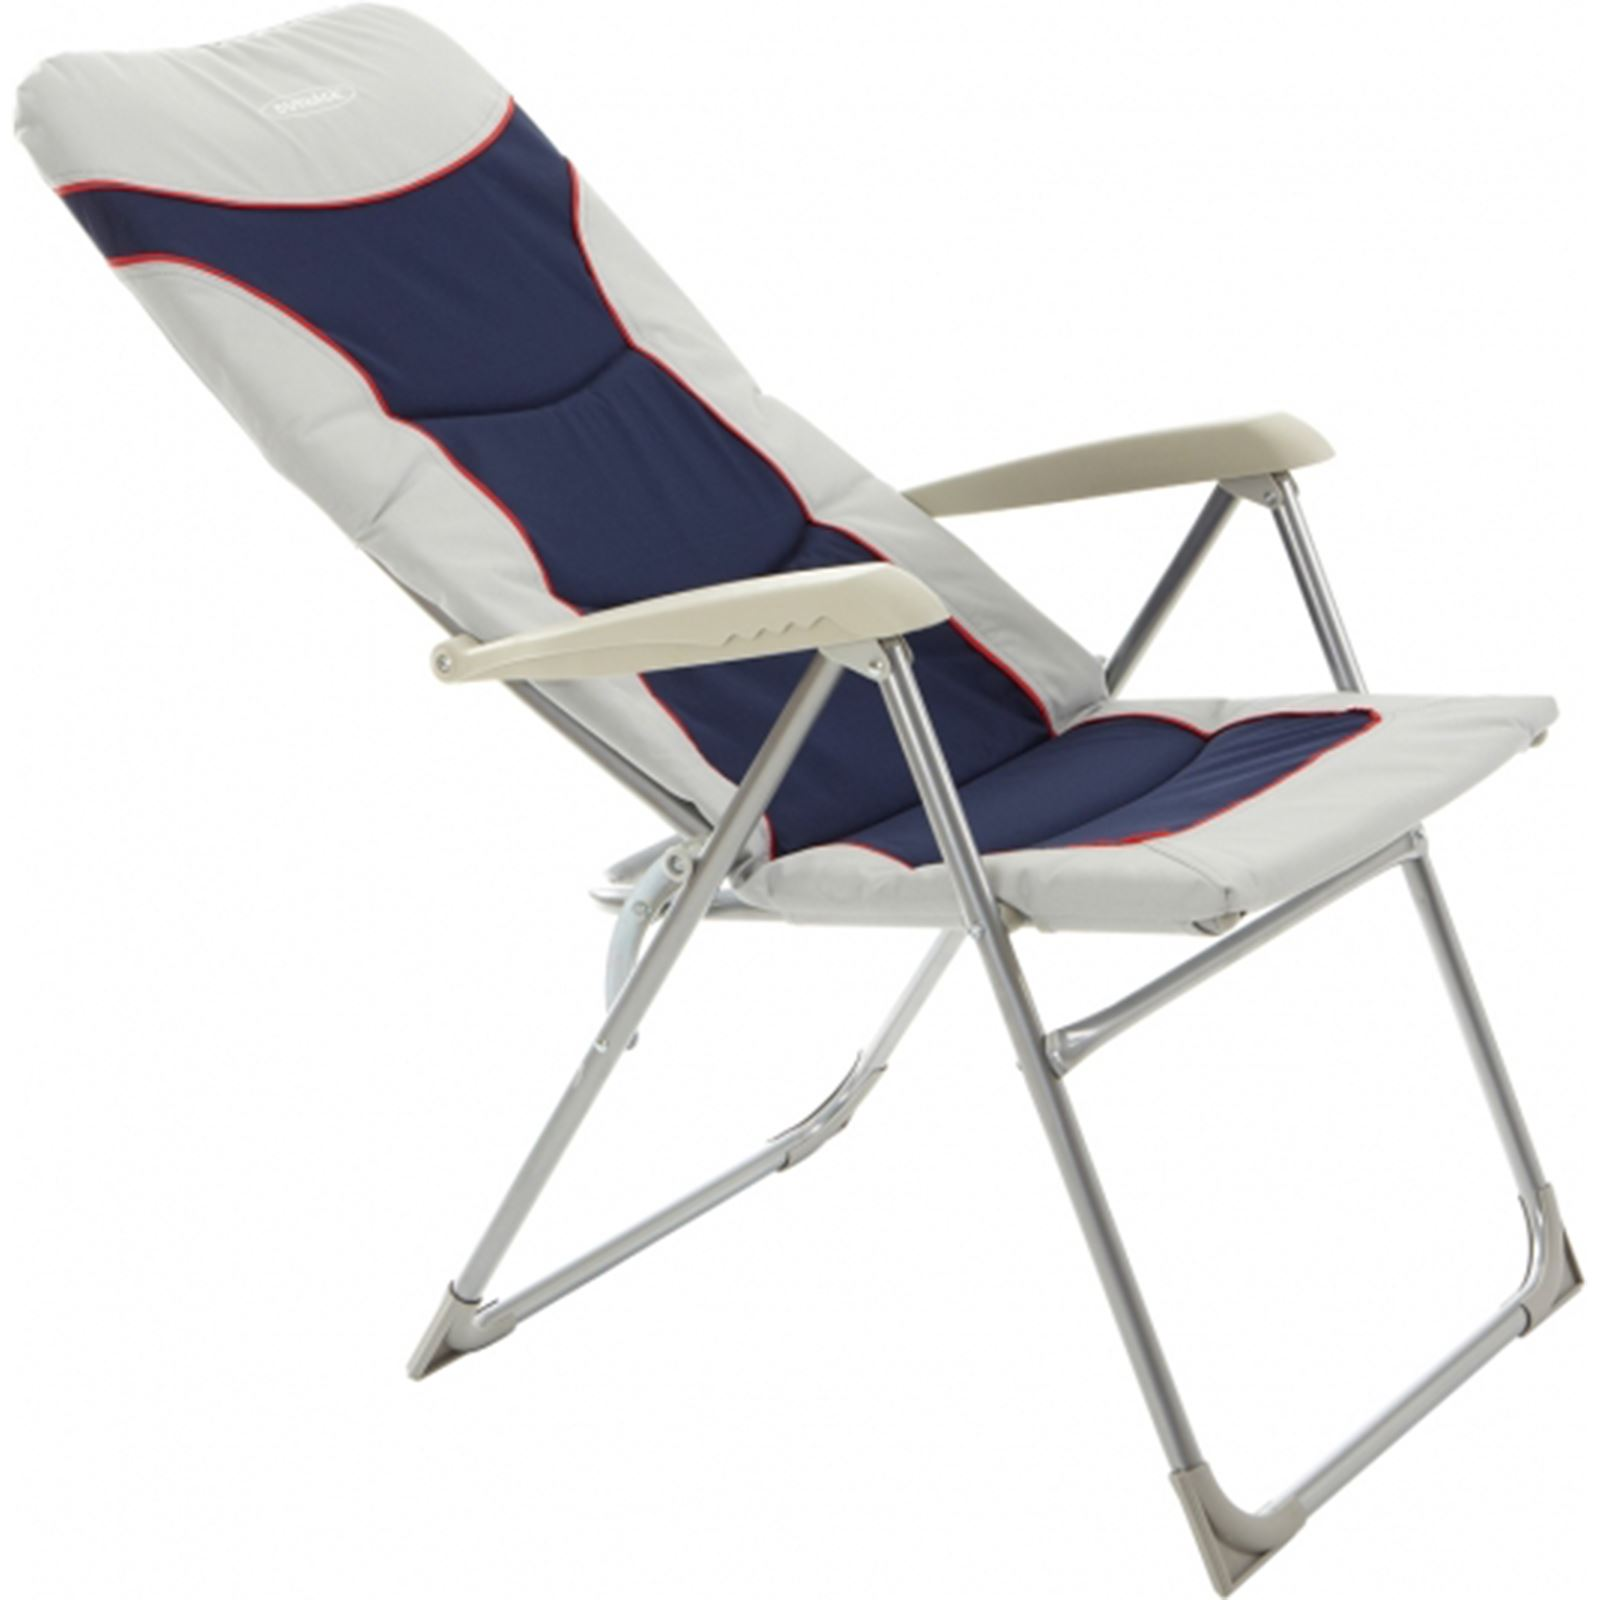 Outback High Back Recliner Folding Chair Blue Silver Camping Caravan Garden